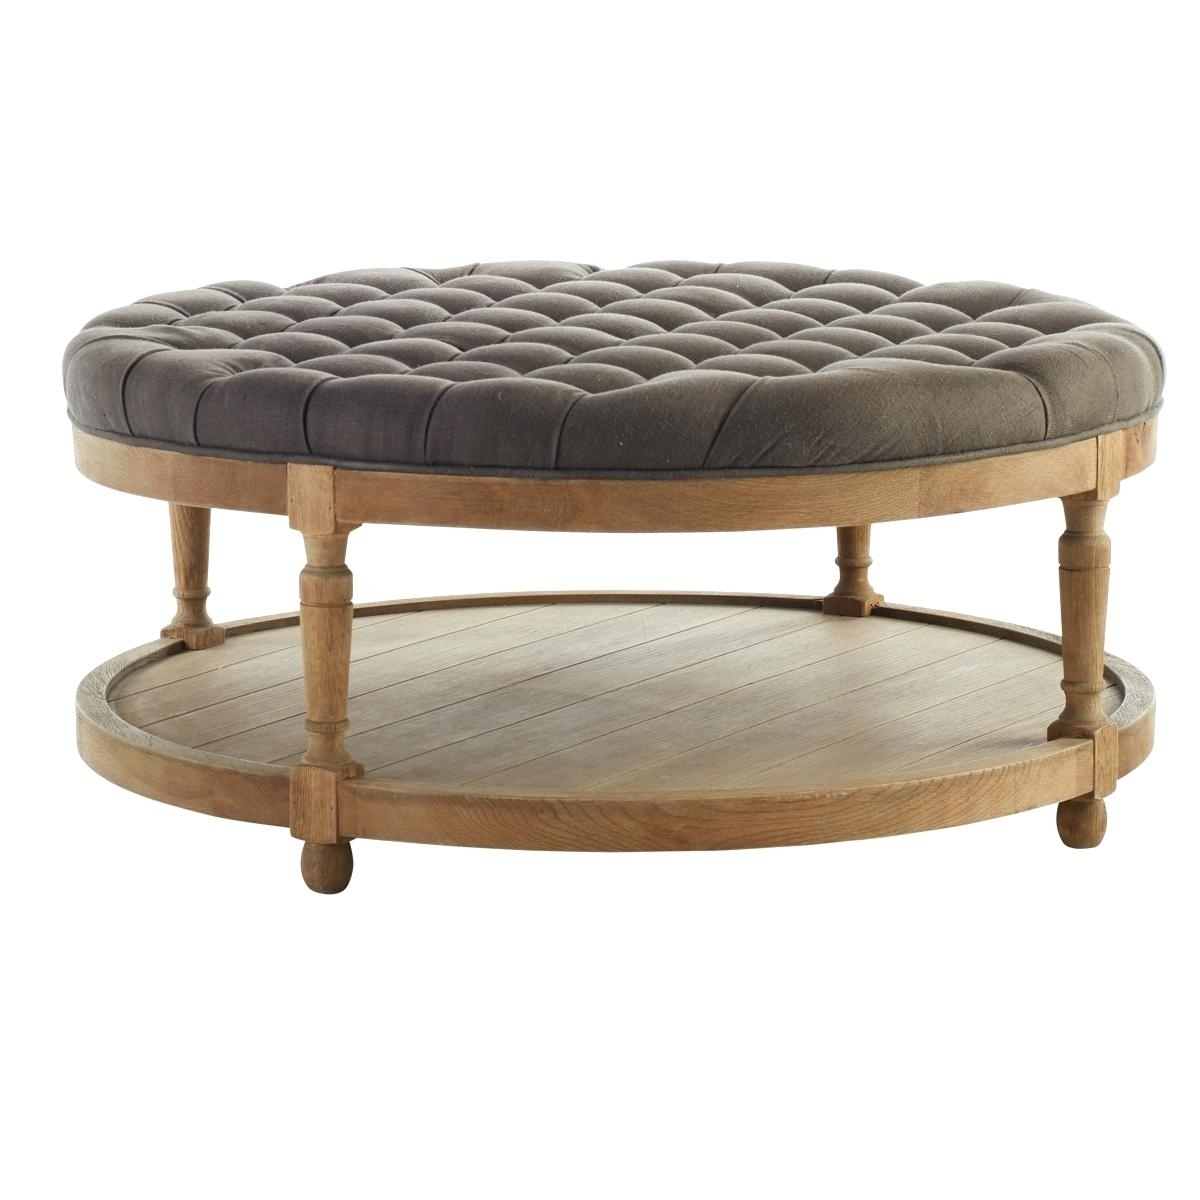 Tufted Coffee Table Wisteria Round Button Essex Ottoman With Tray inside Round Button Tufted Coffee Tables (Image 30 of 30)